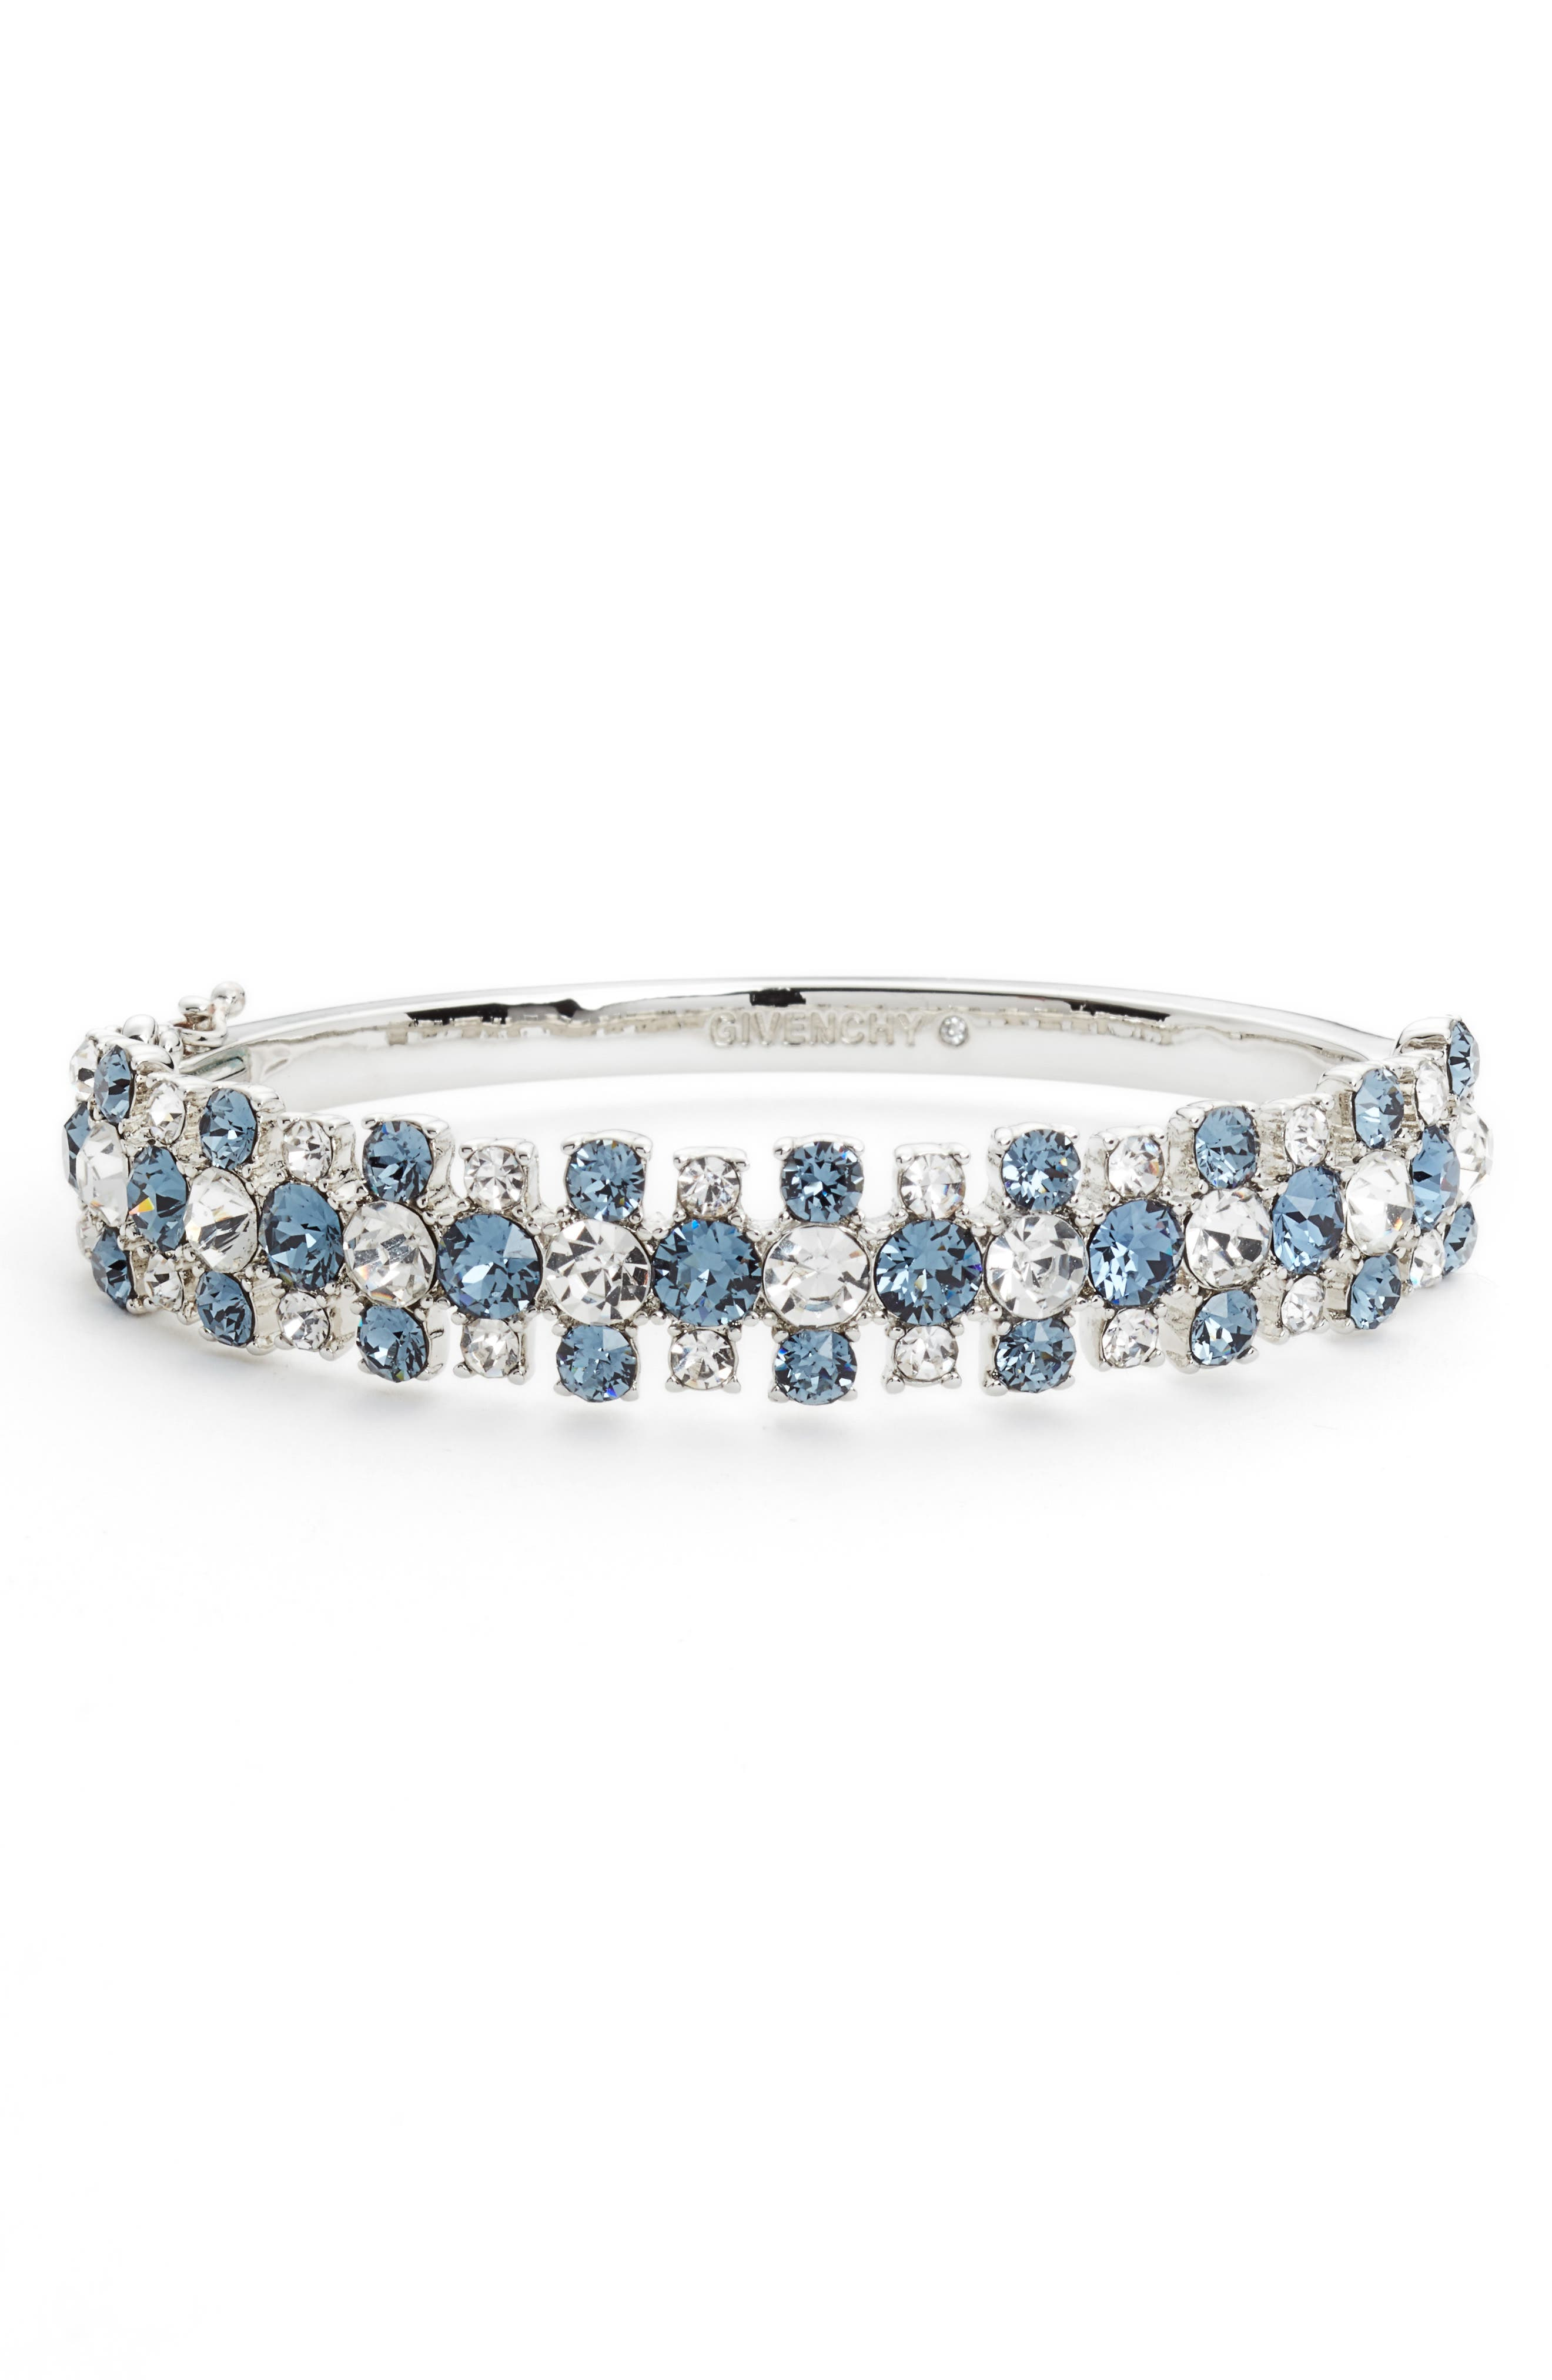 Crystal Bangle Bracelet,                             Main thumbnail 1, color,                             040